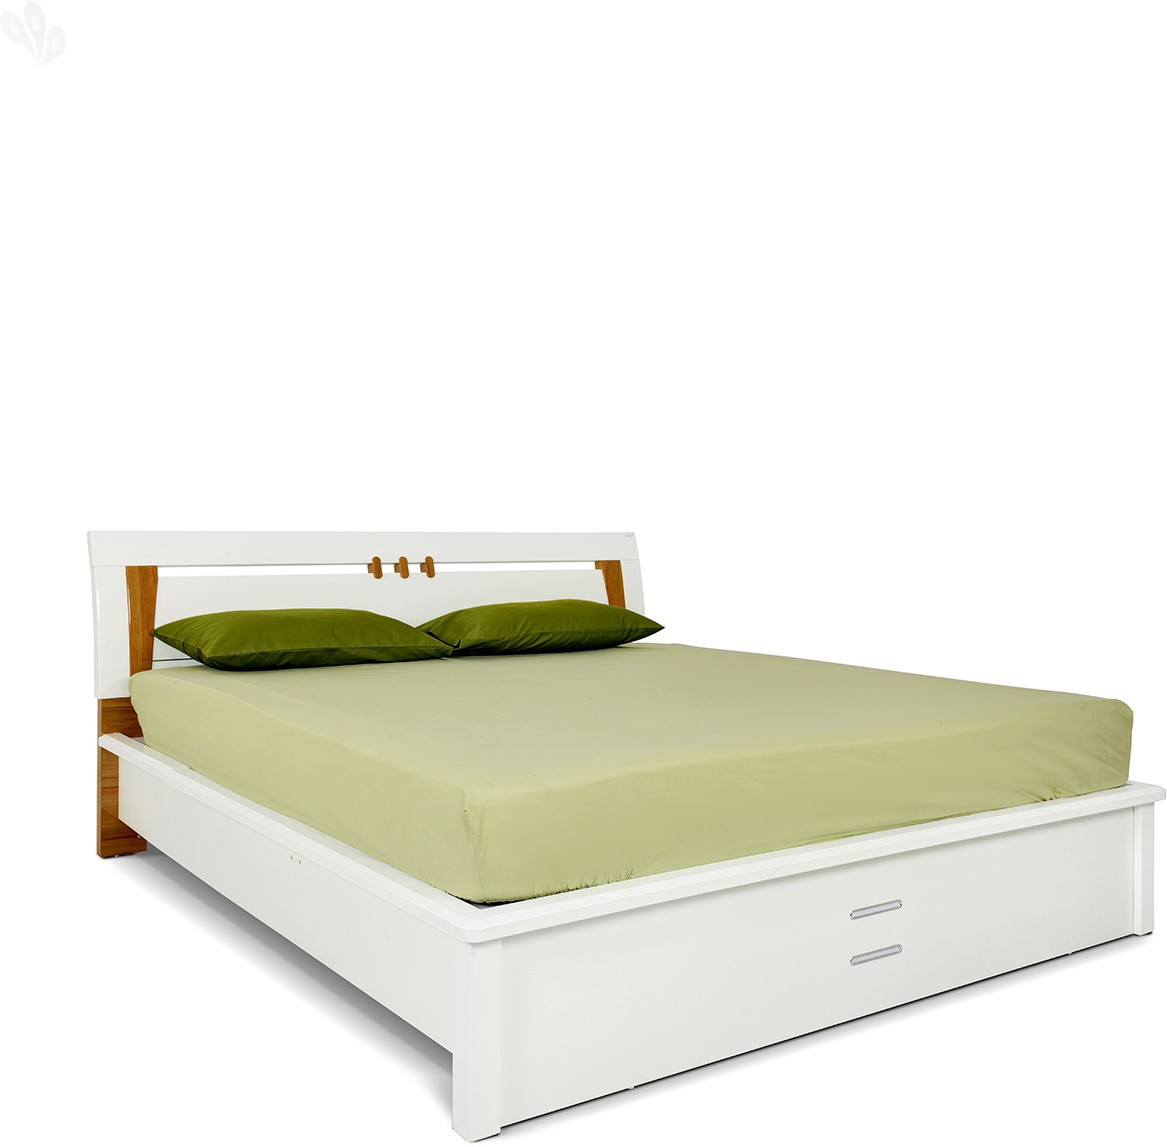 View Royal Oak Olive Engineered Wood King Bed With Storage(Finish Color -  White) Furniture (Royal Oak)